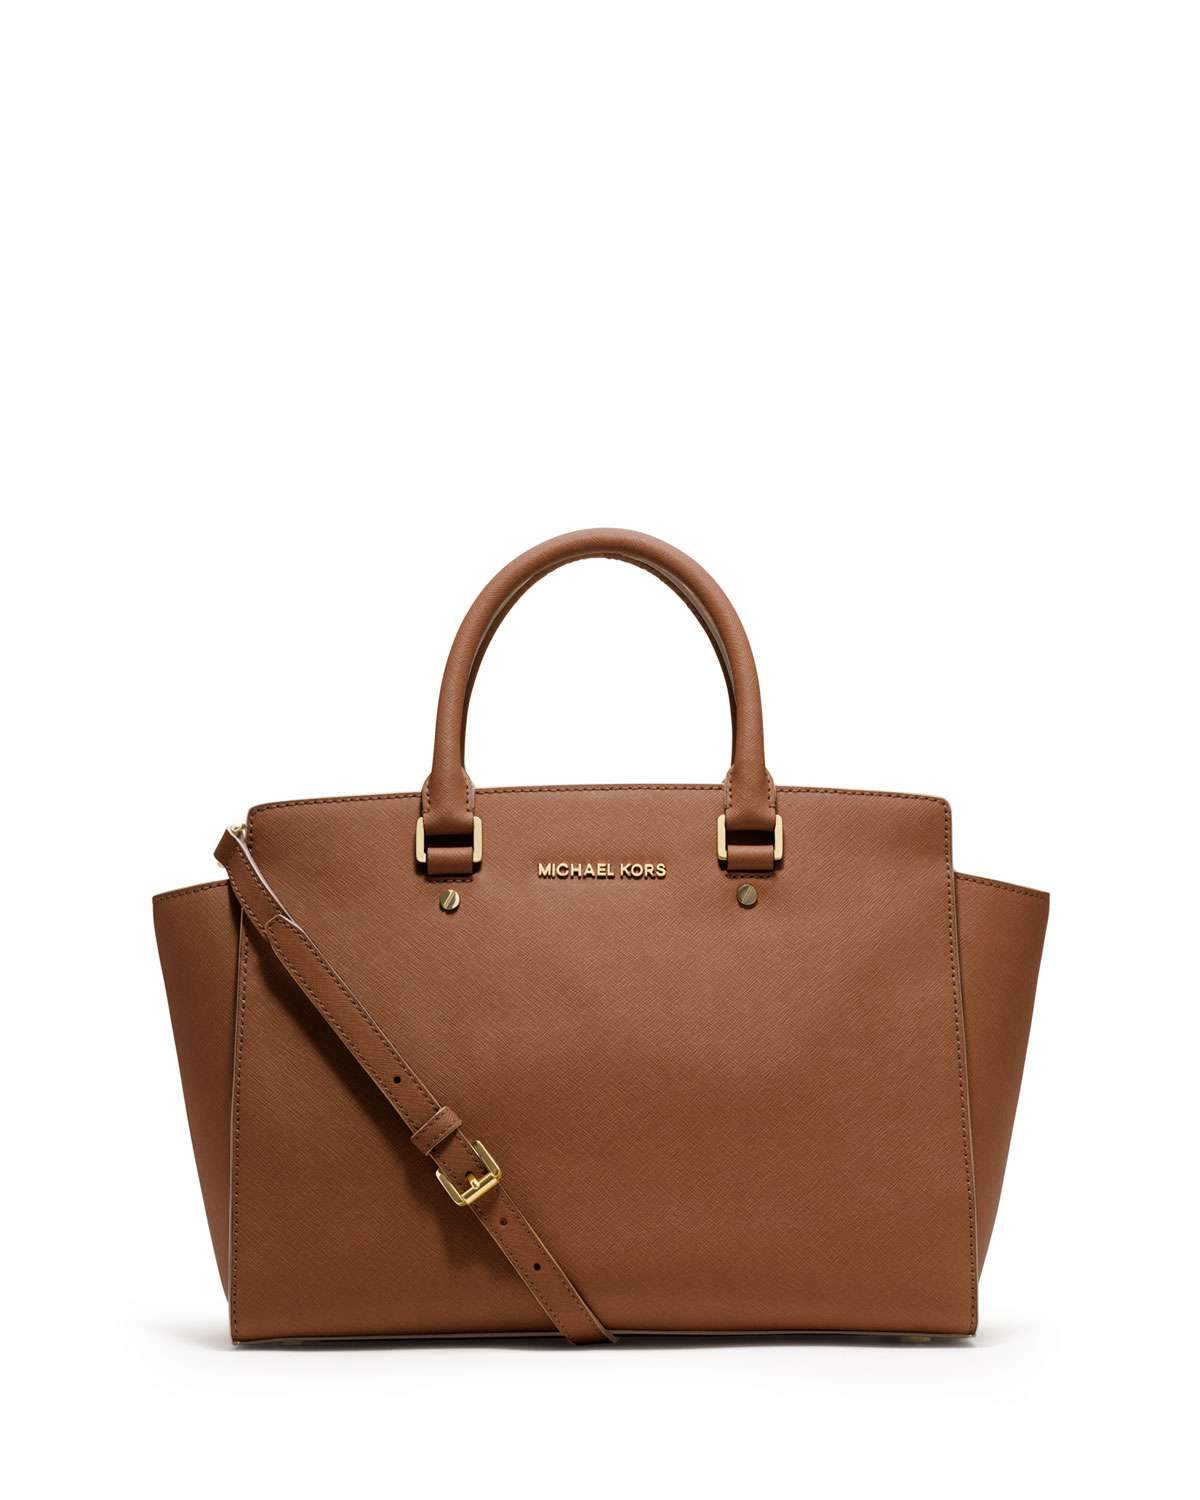 Michael Kors Outlet Online Canada - Cheap Michael Kors Handbags,Bags,Shoes,Wallets,Sunglasses,Accessories Hot Sale,Here Is Your Best Choice For Purchasing Michael helmbactidi.gae To Buy!